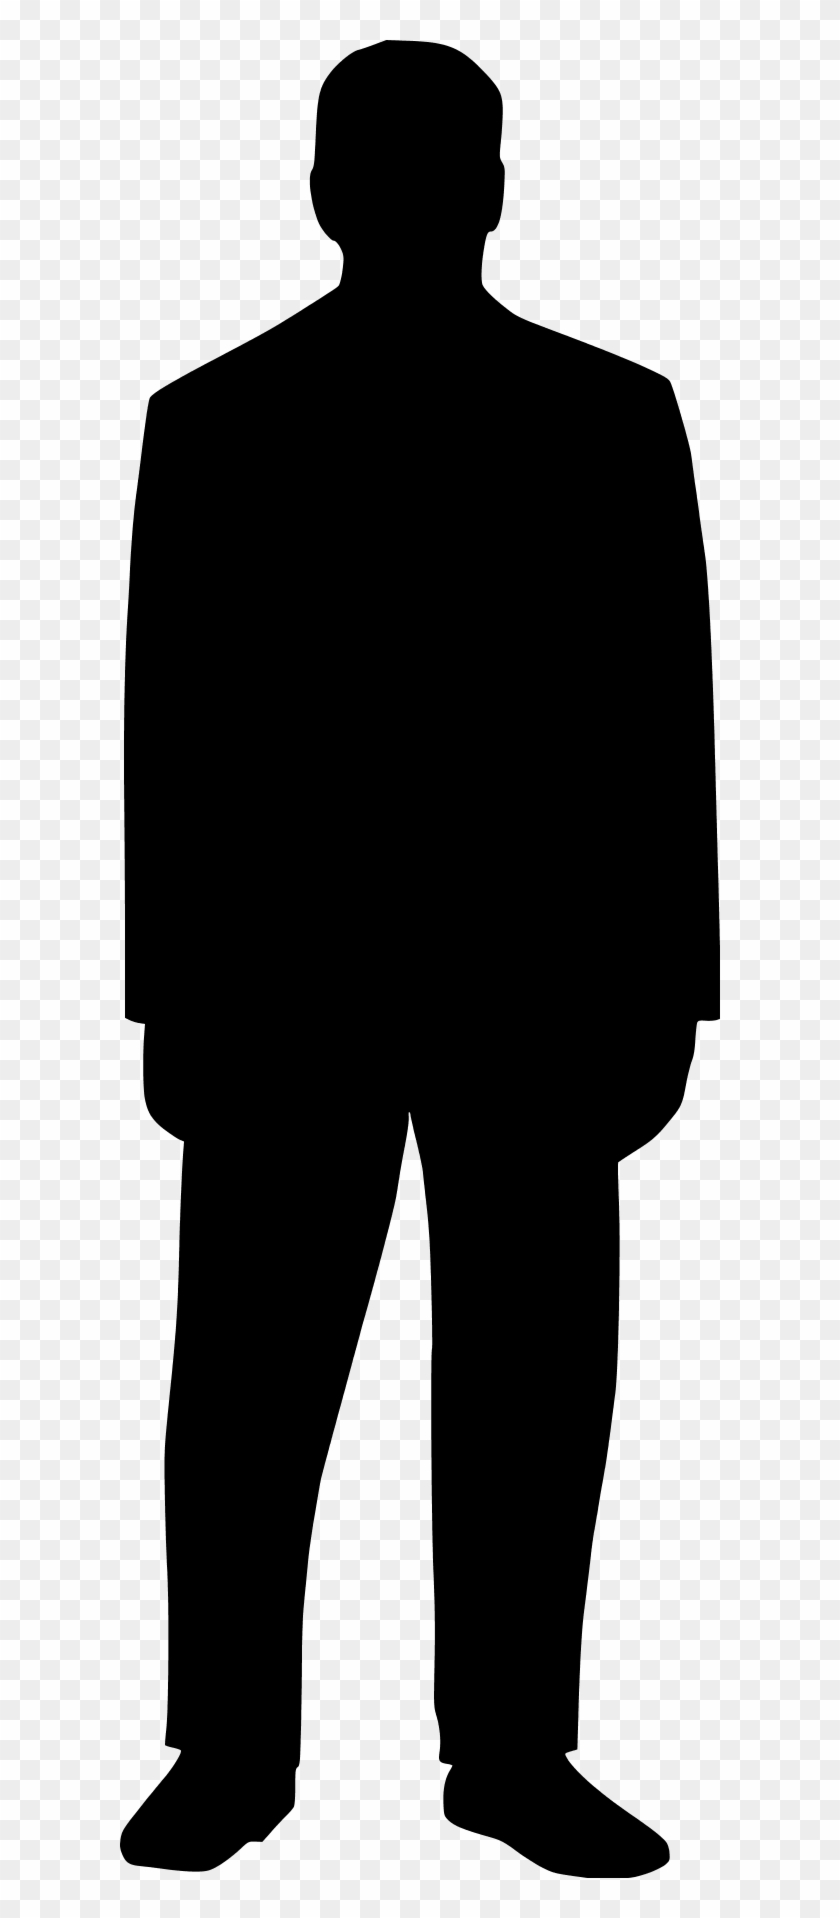 Man Standing Silhouette Clipart Panda - Outline Of A Man Standing #342195